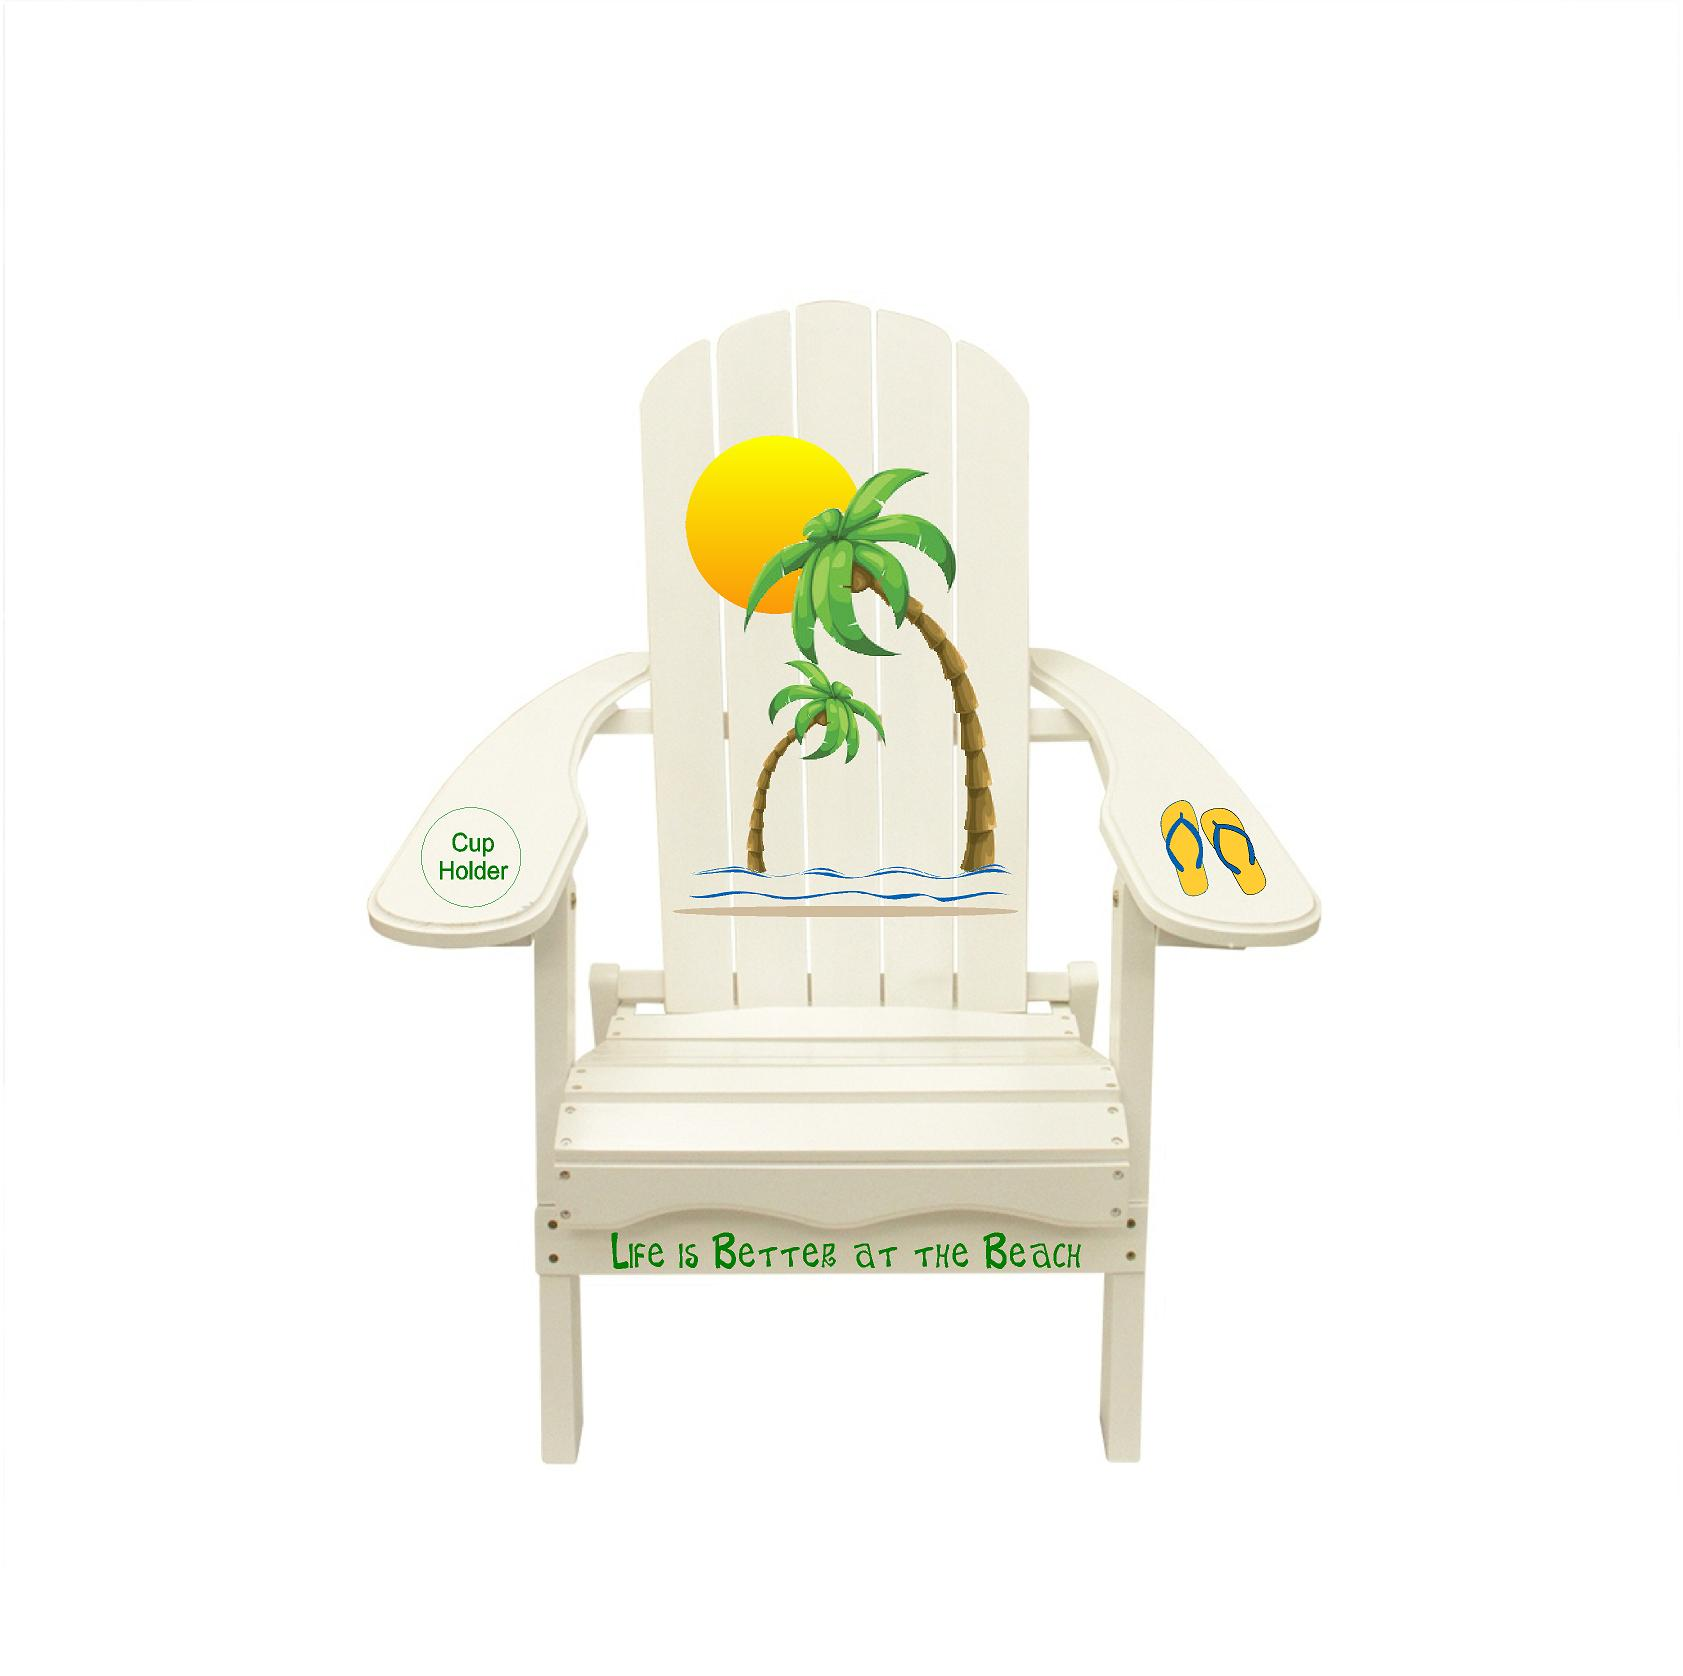 Palm Tree, Flip Flops, Life is Better at the Beach saying Outdoor Wooden Adirondack Lounge Chair